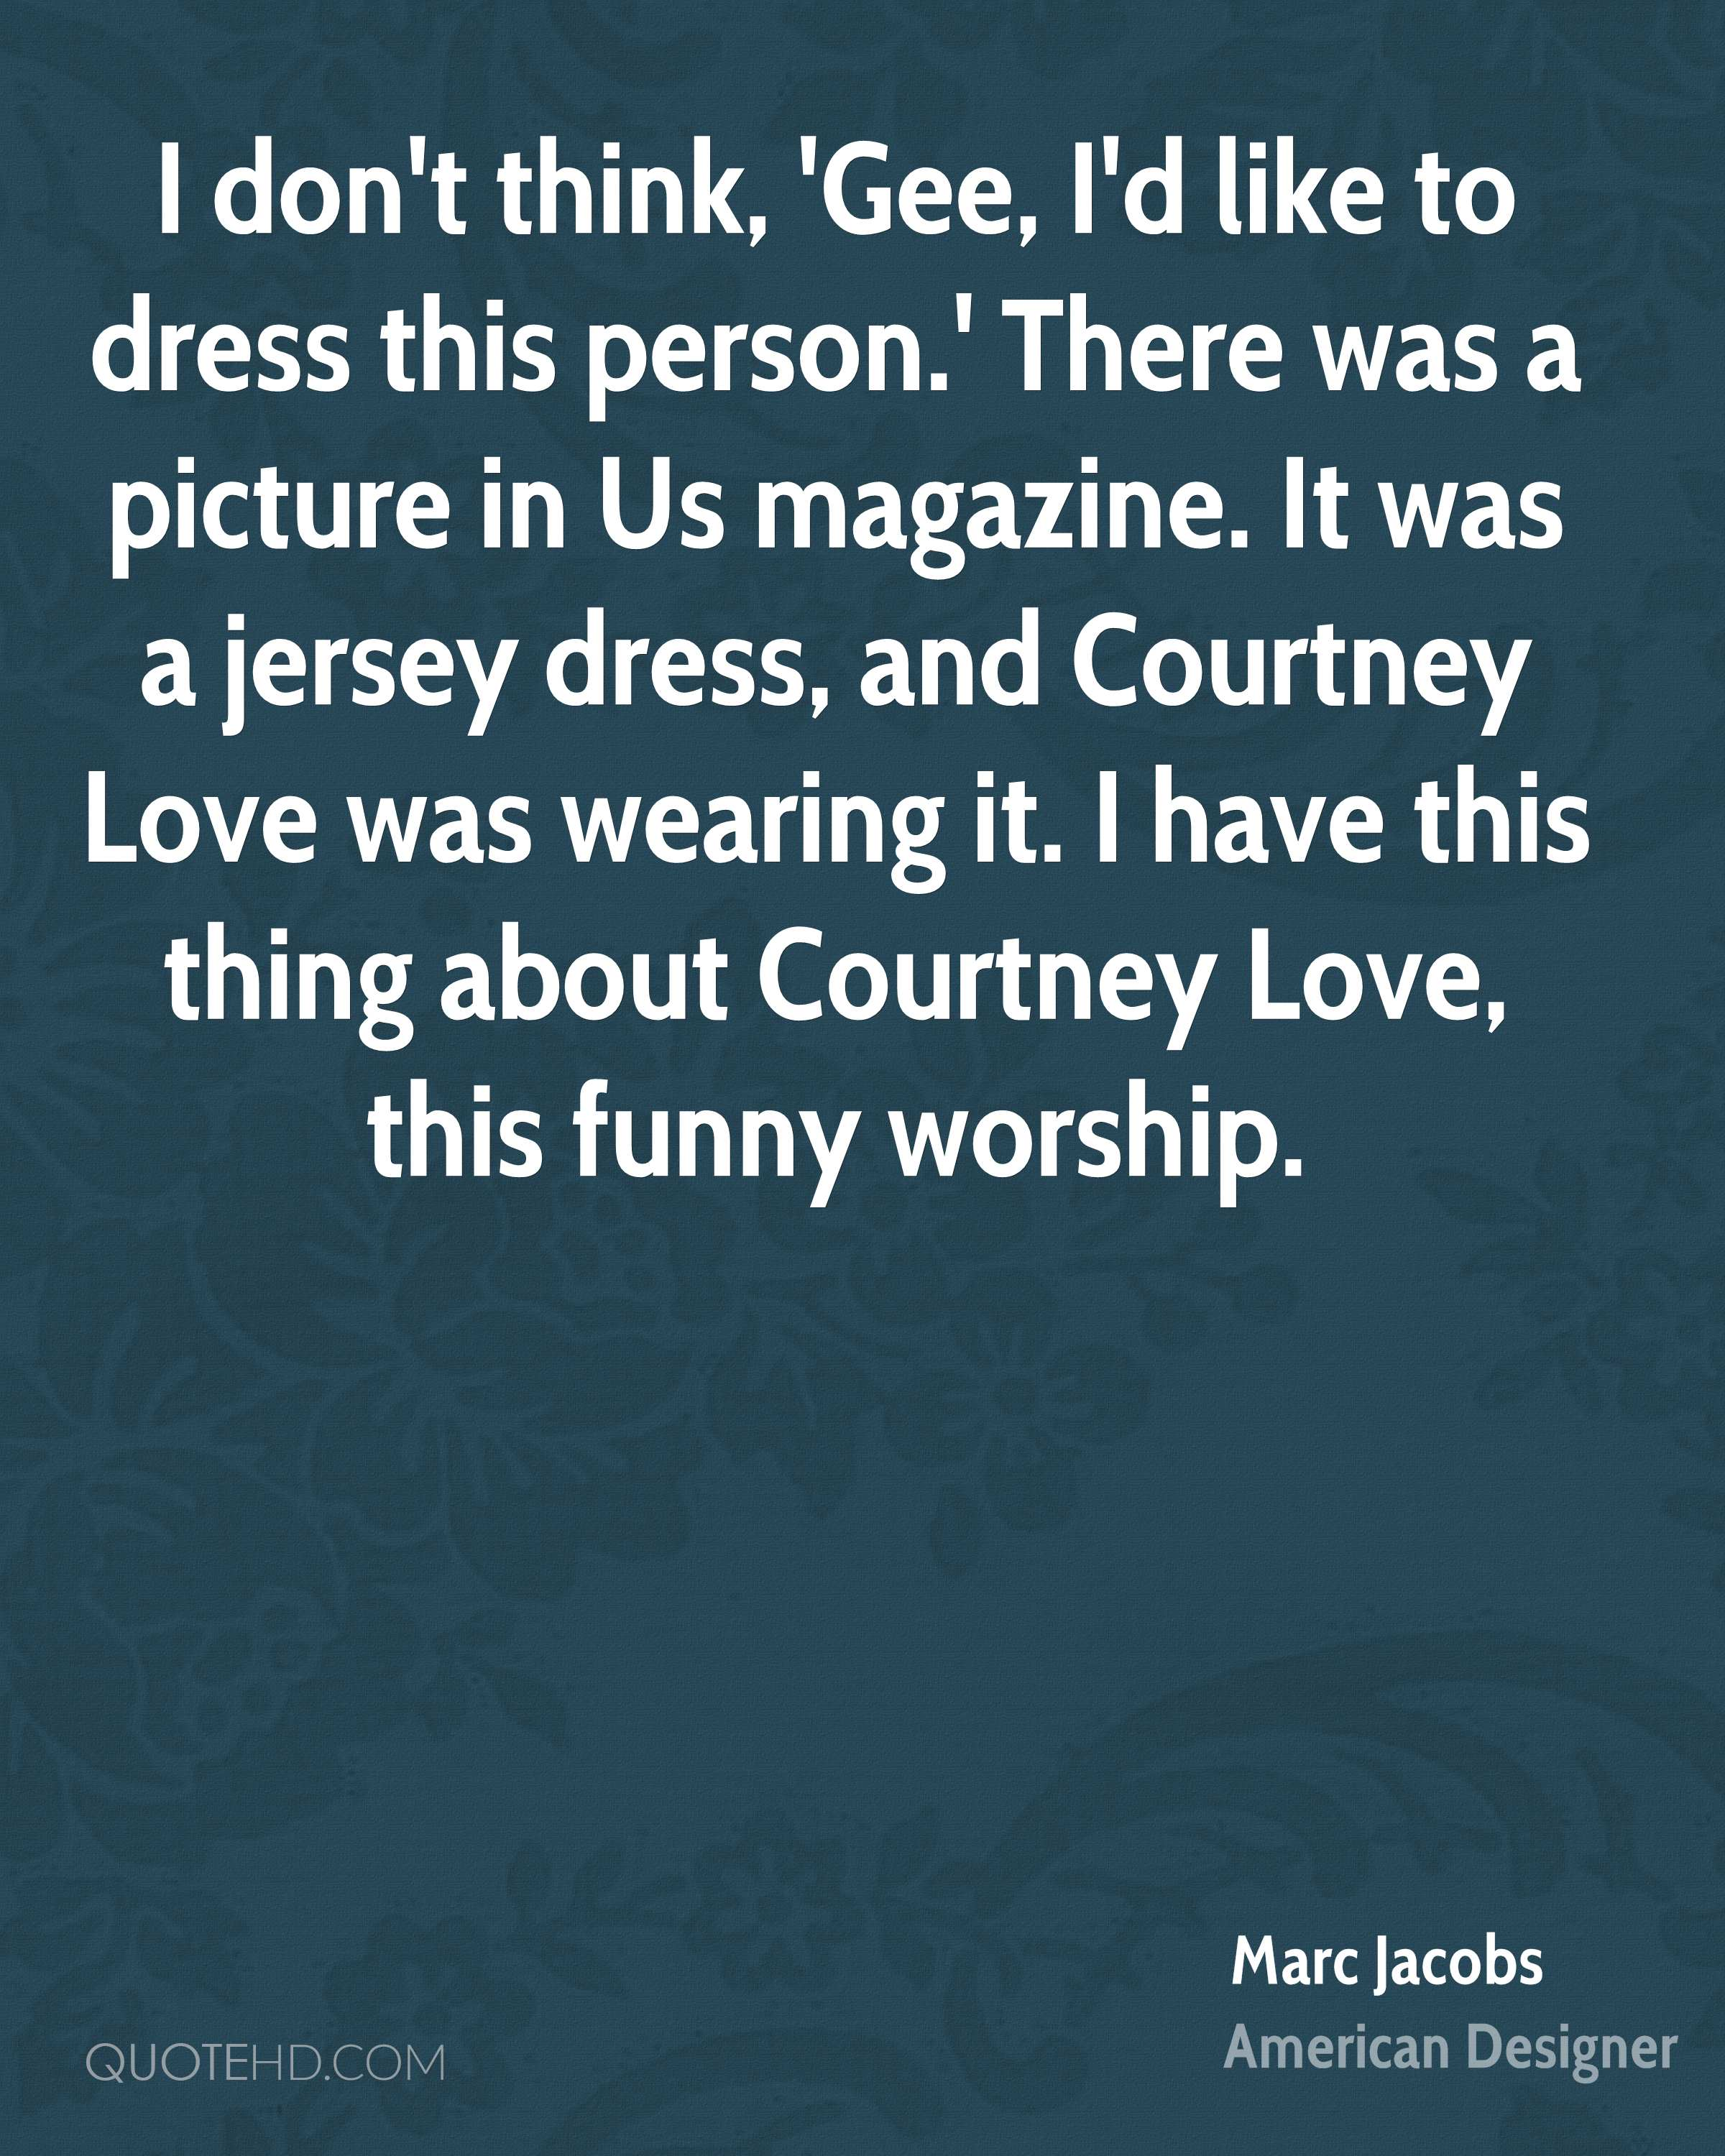 I don't think, 'Gee, I'd like to dress this person.' There was a picture in Us magazine. It was a jersey dress, and Courtney Love was wearing it. I have this thing about Courtney Love, this funny worship.